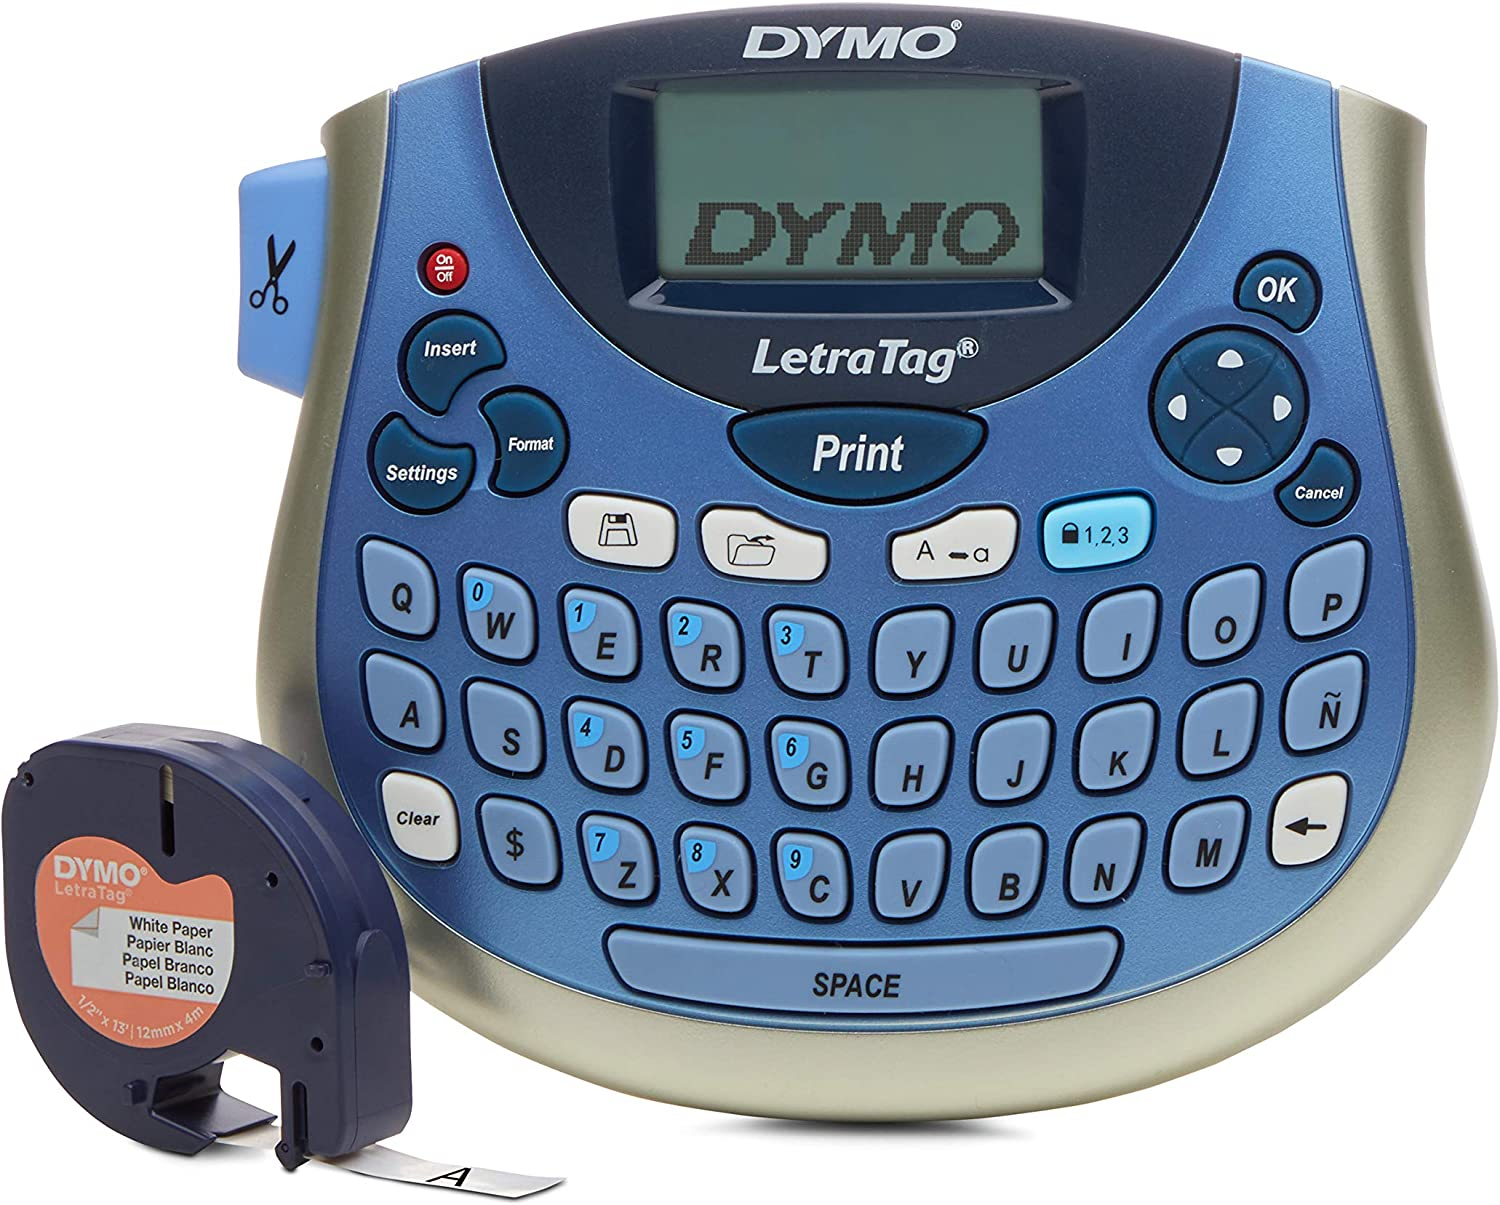 DYMO LetraTag LT-100T Plus Compact, Portable Label Maker with QWERTY keyboard (1733013),Silver/Blue: Electronics